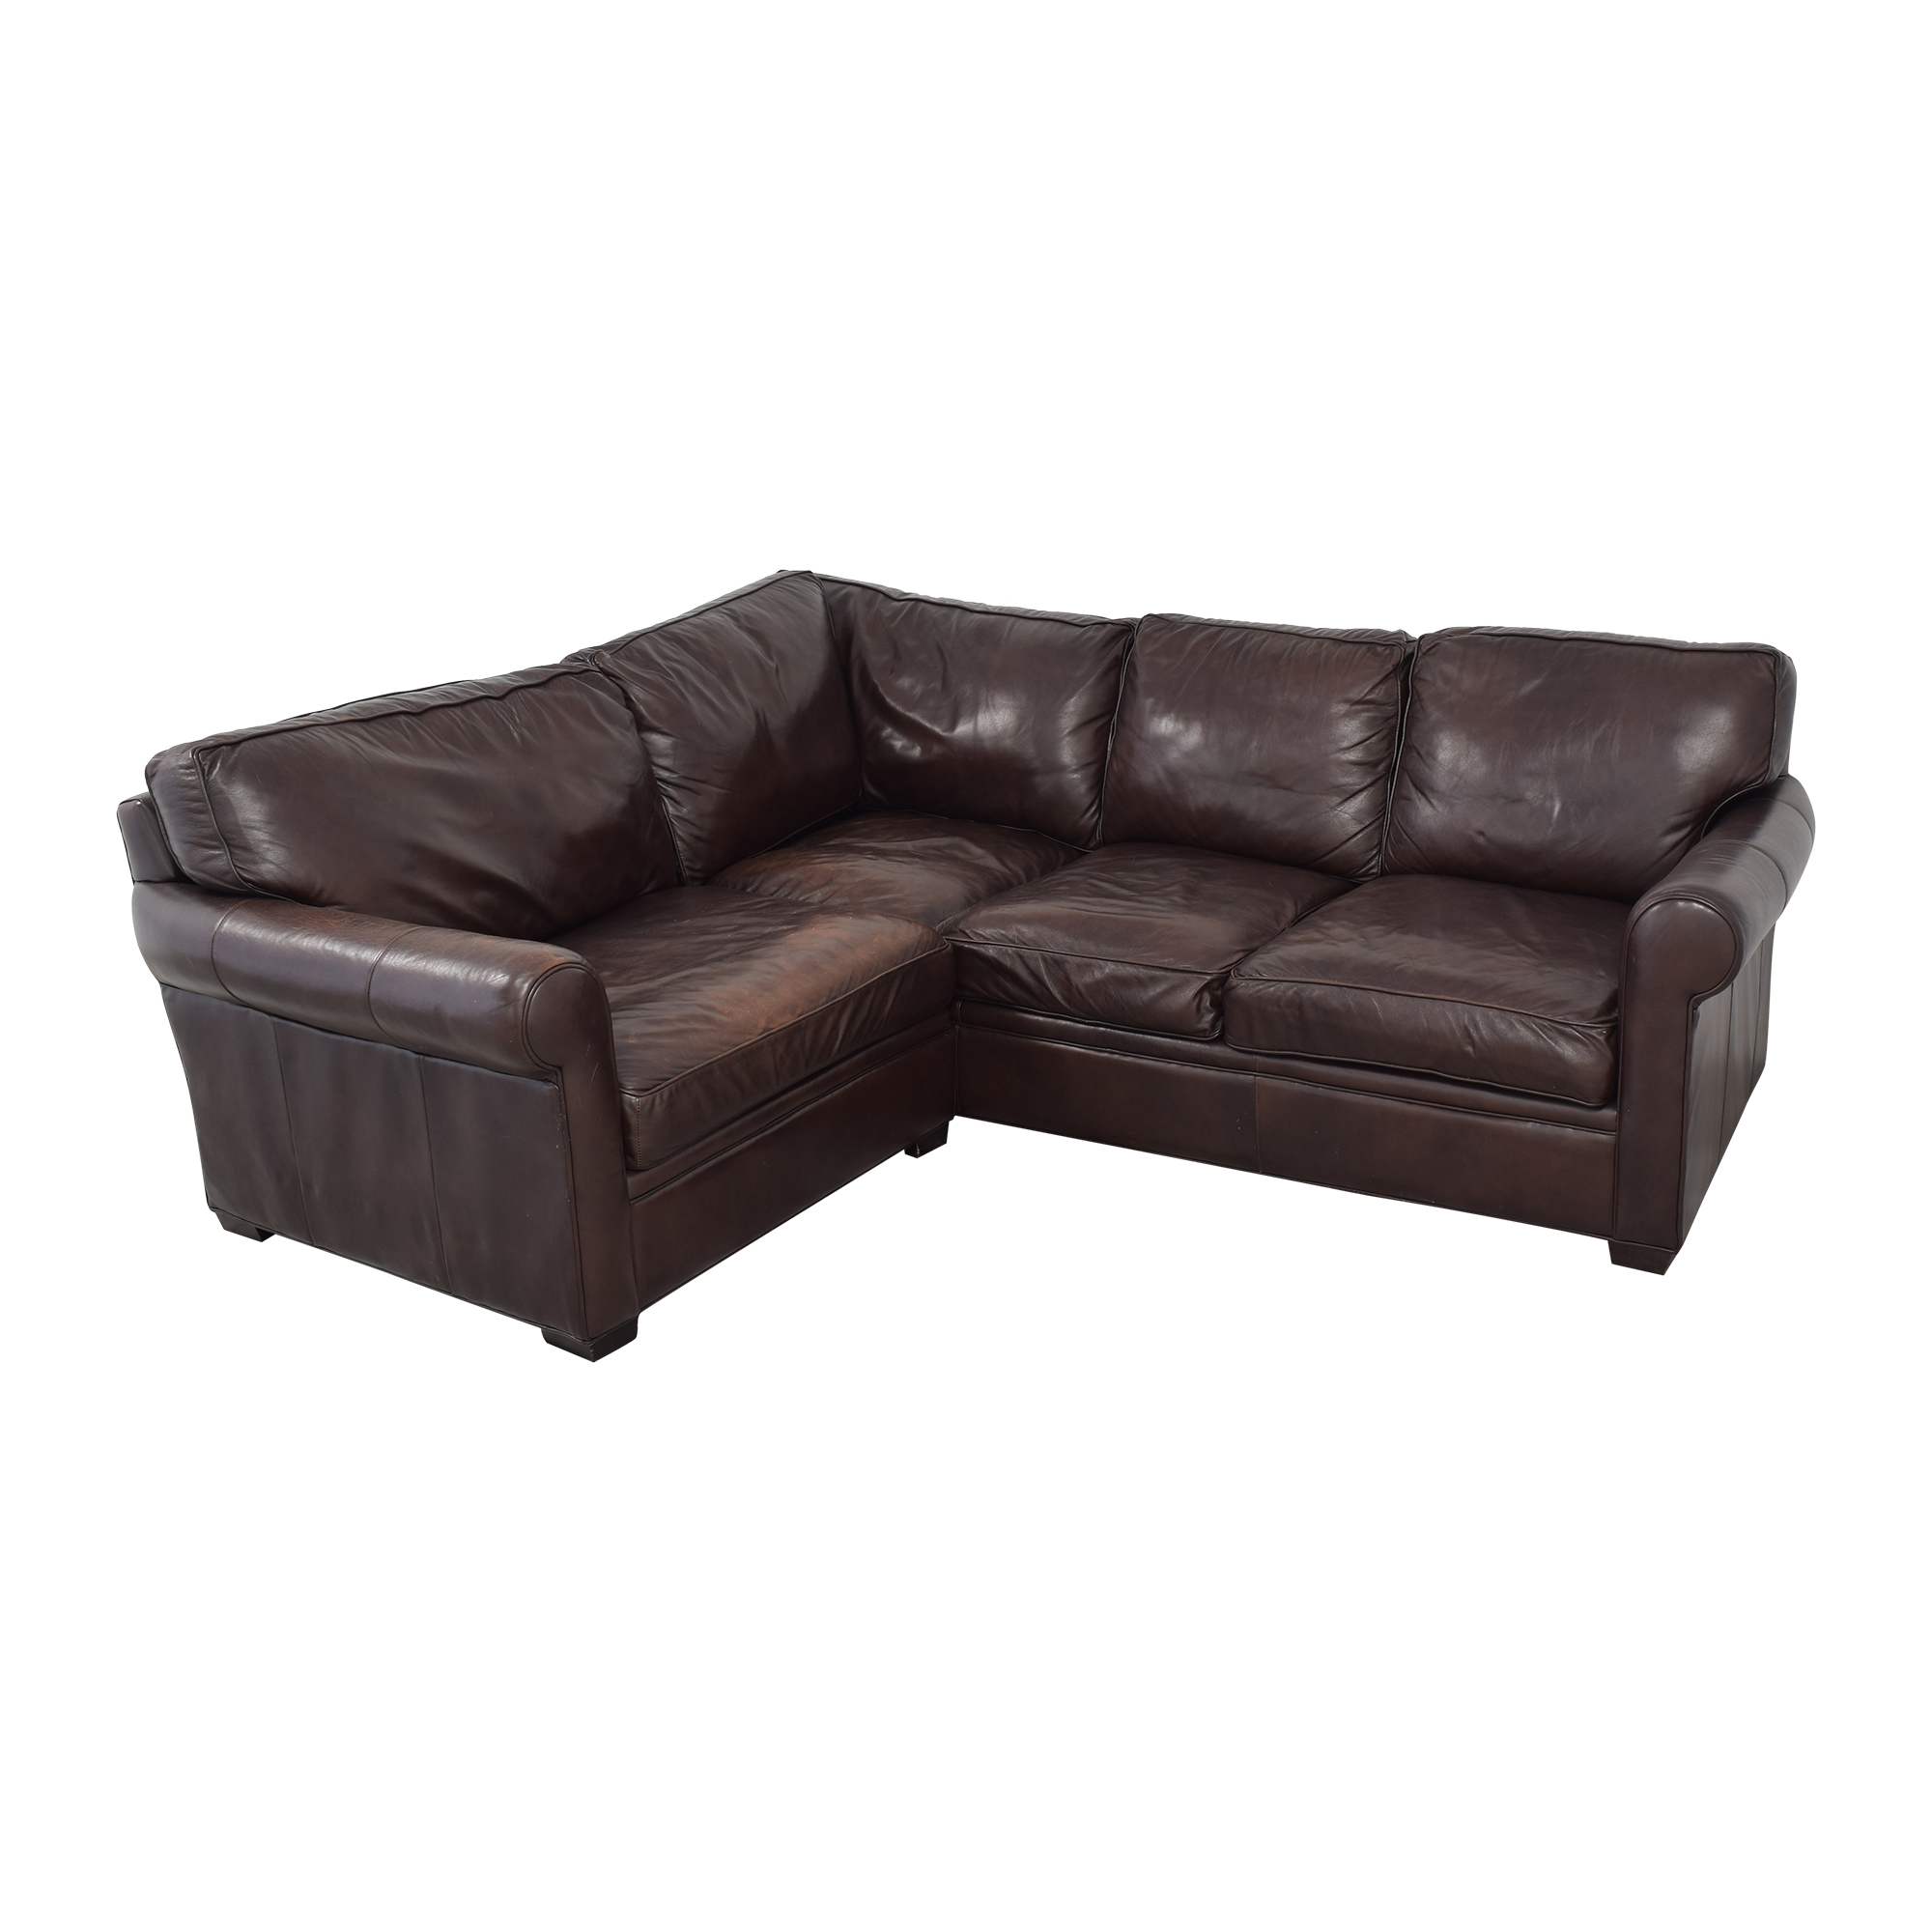 Crate & Barrel Crate & Barrel L-Shaped Sectional Sofa for sale